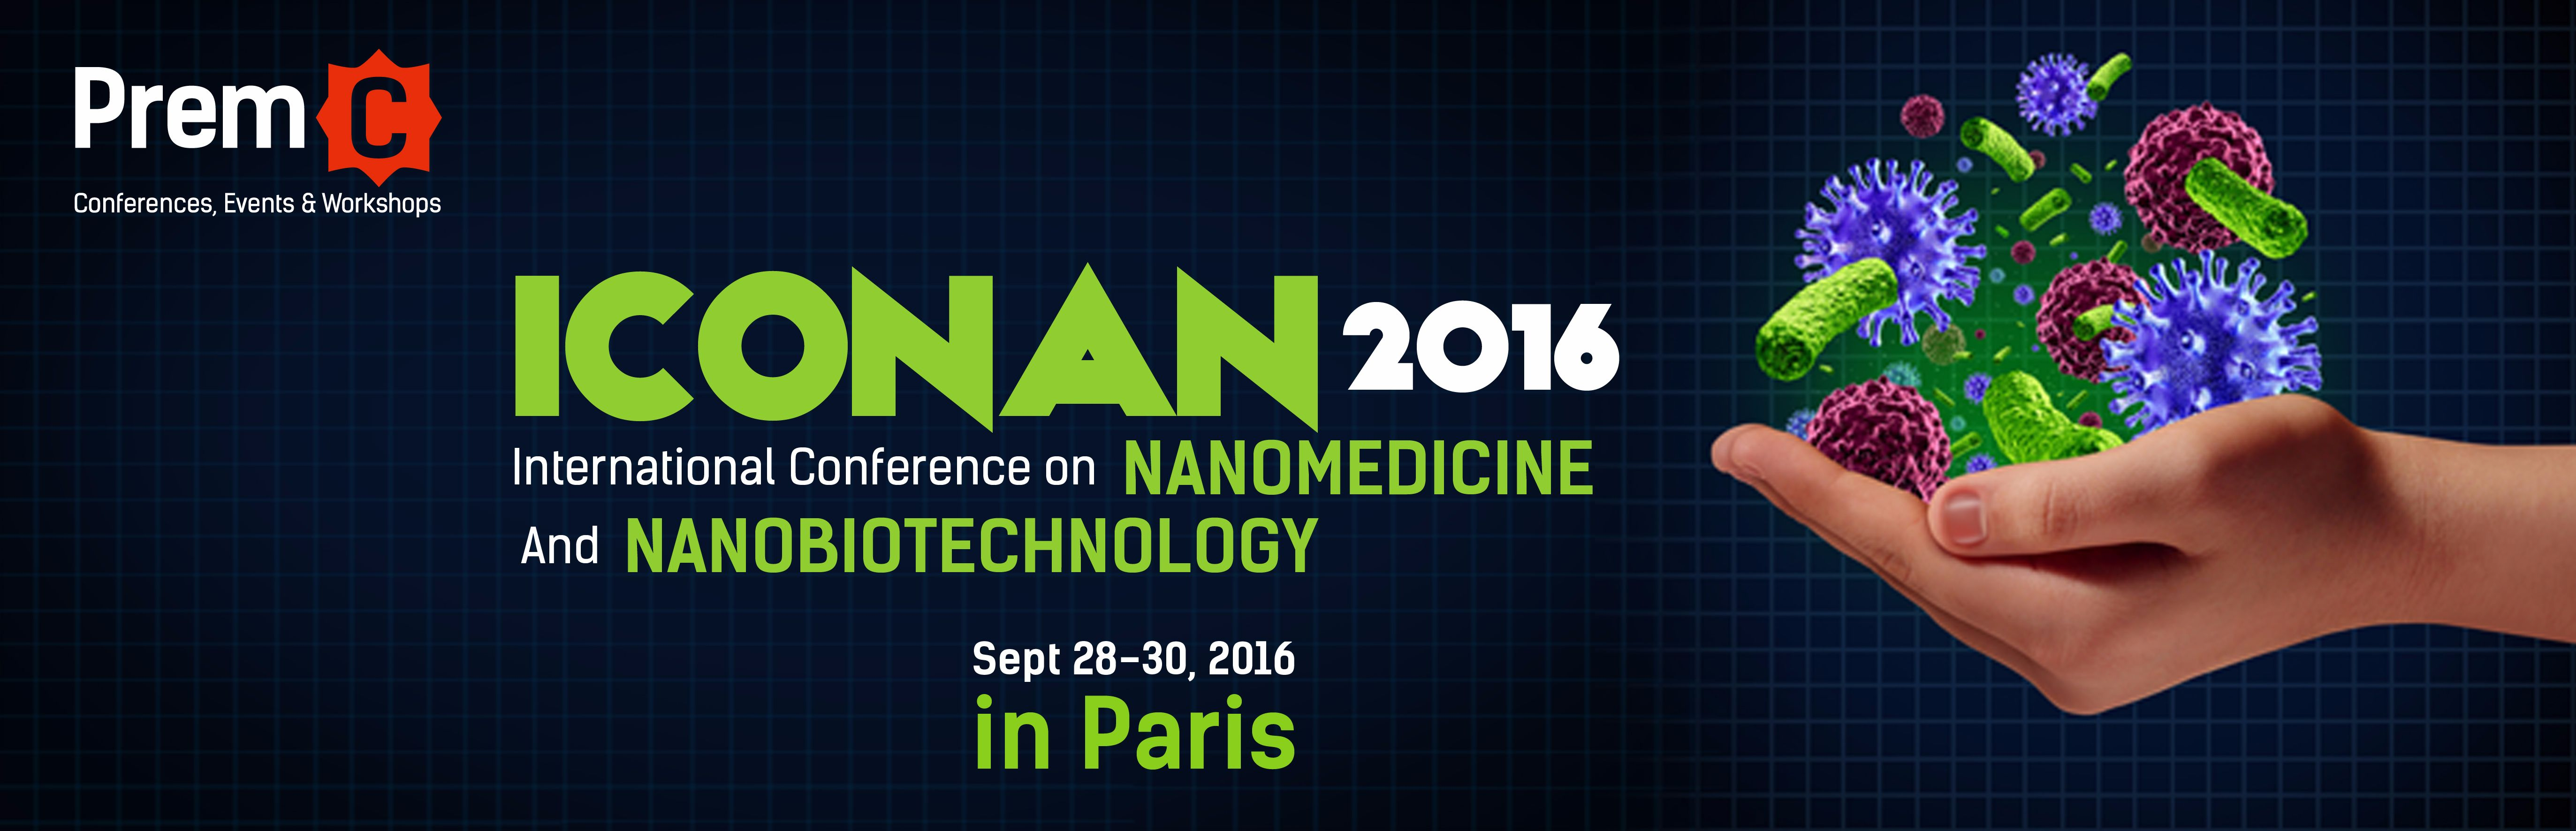 ICONAN 2016 – Conference On Nanomedicine and Nanobiotechnology